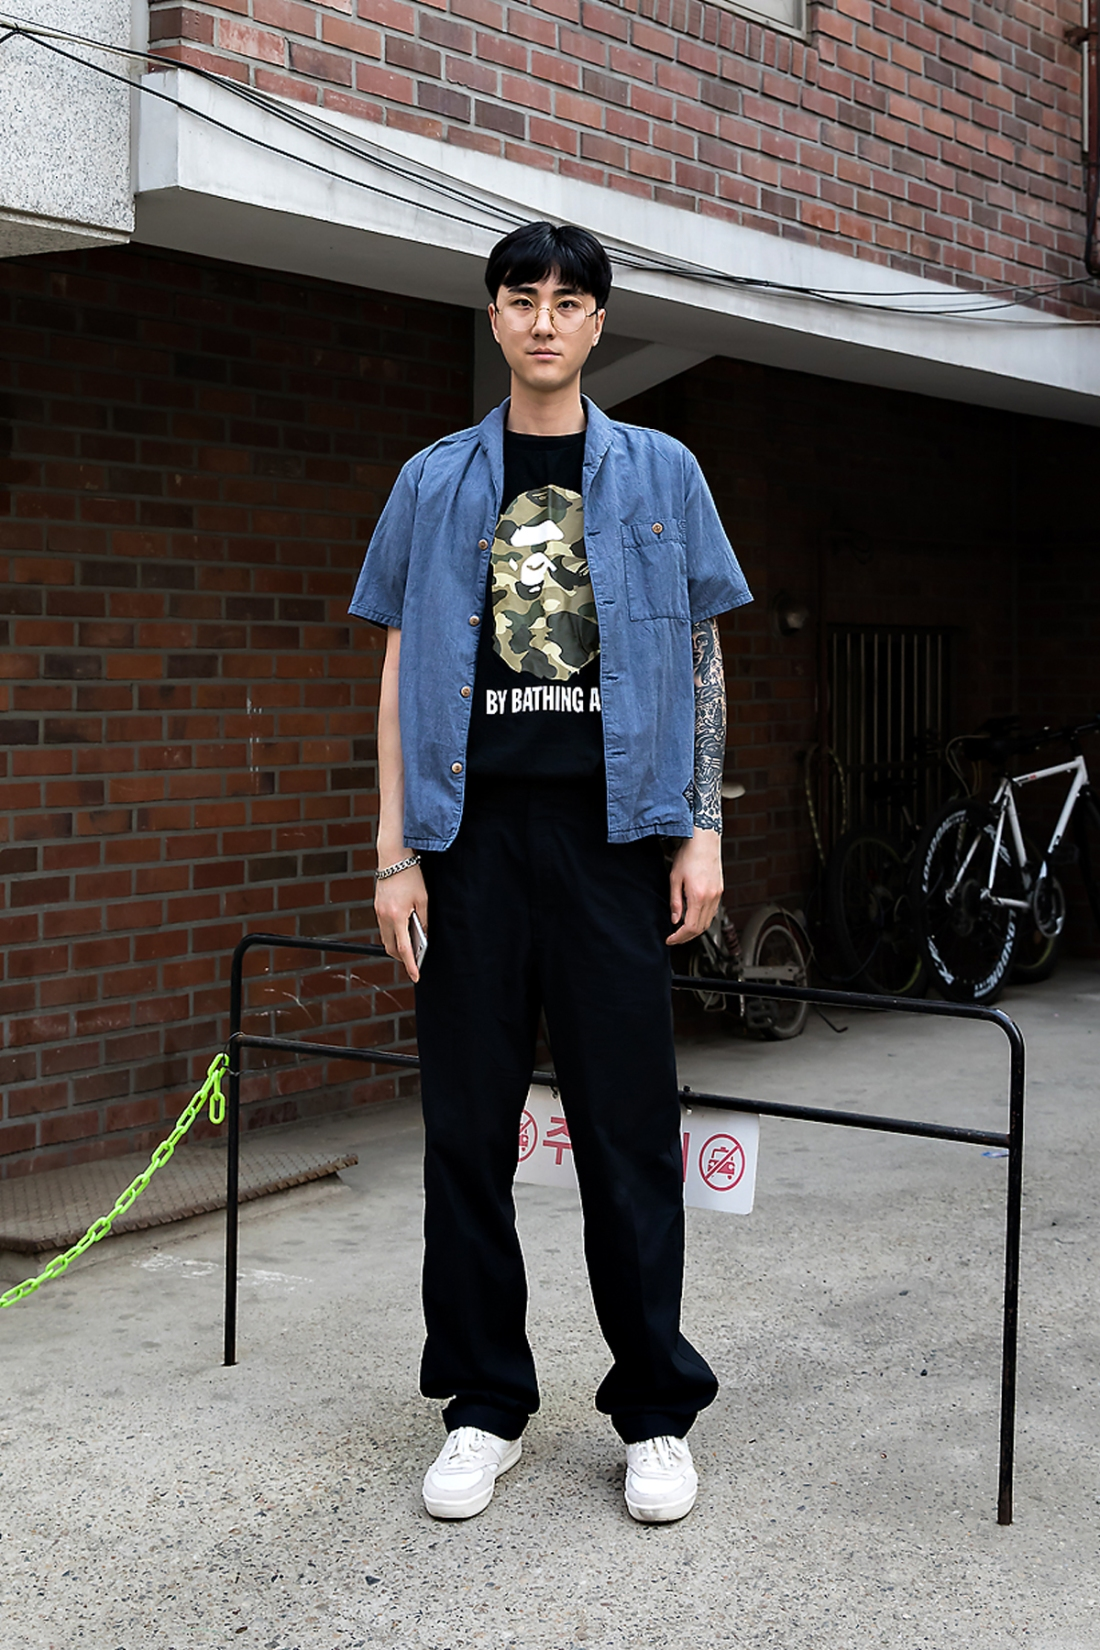 Lee Yusung, Street Fashion 2017 in Seoul